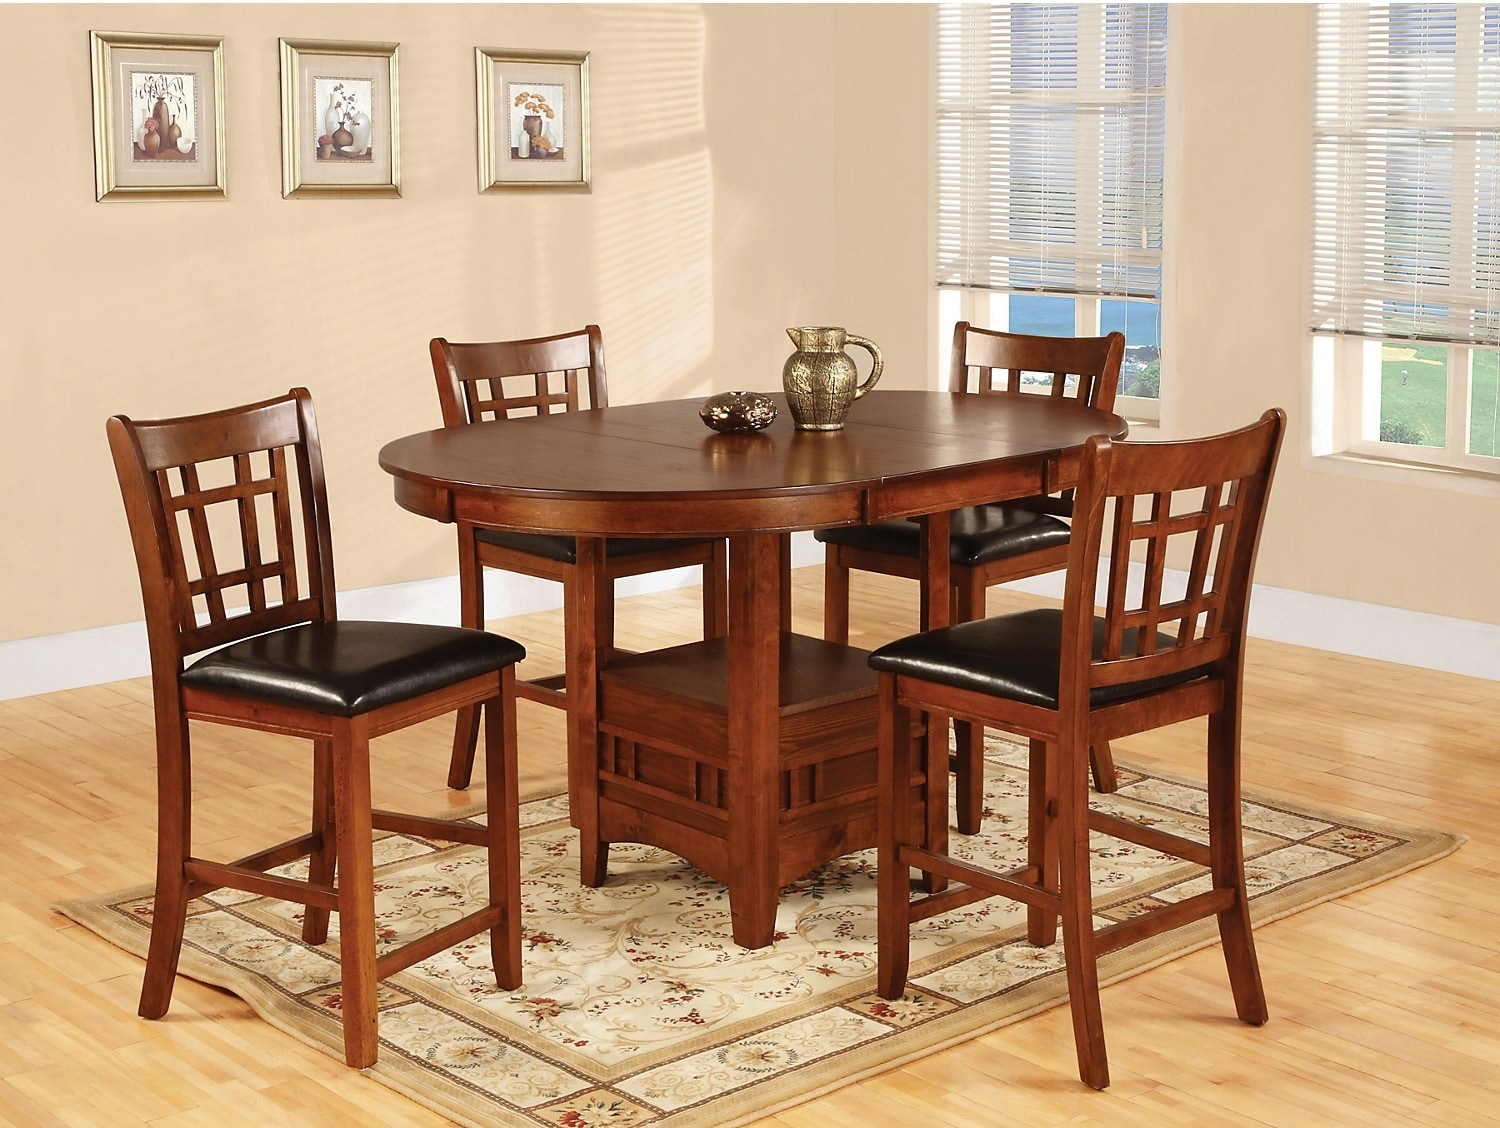 Dalton 5 Piece Oak Counter-Height Dining Package